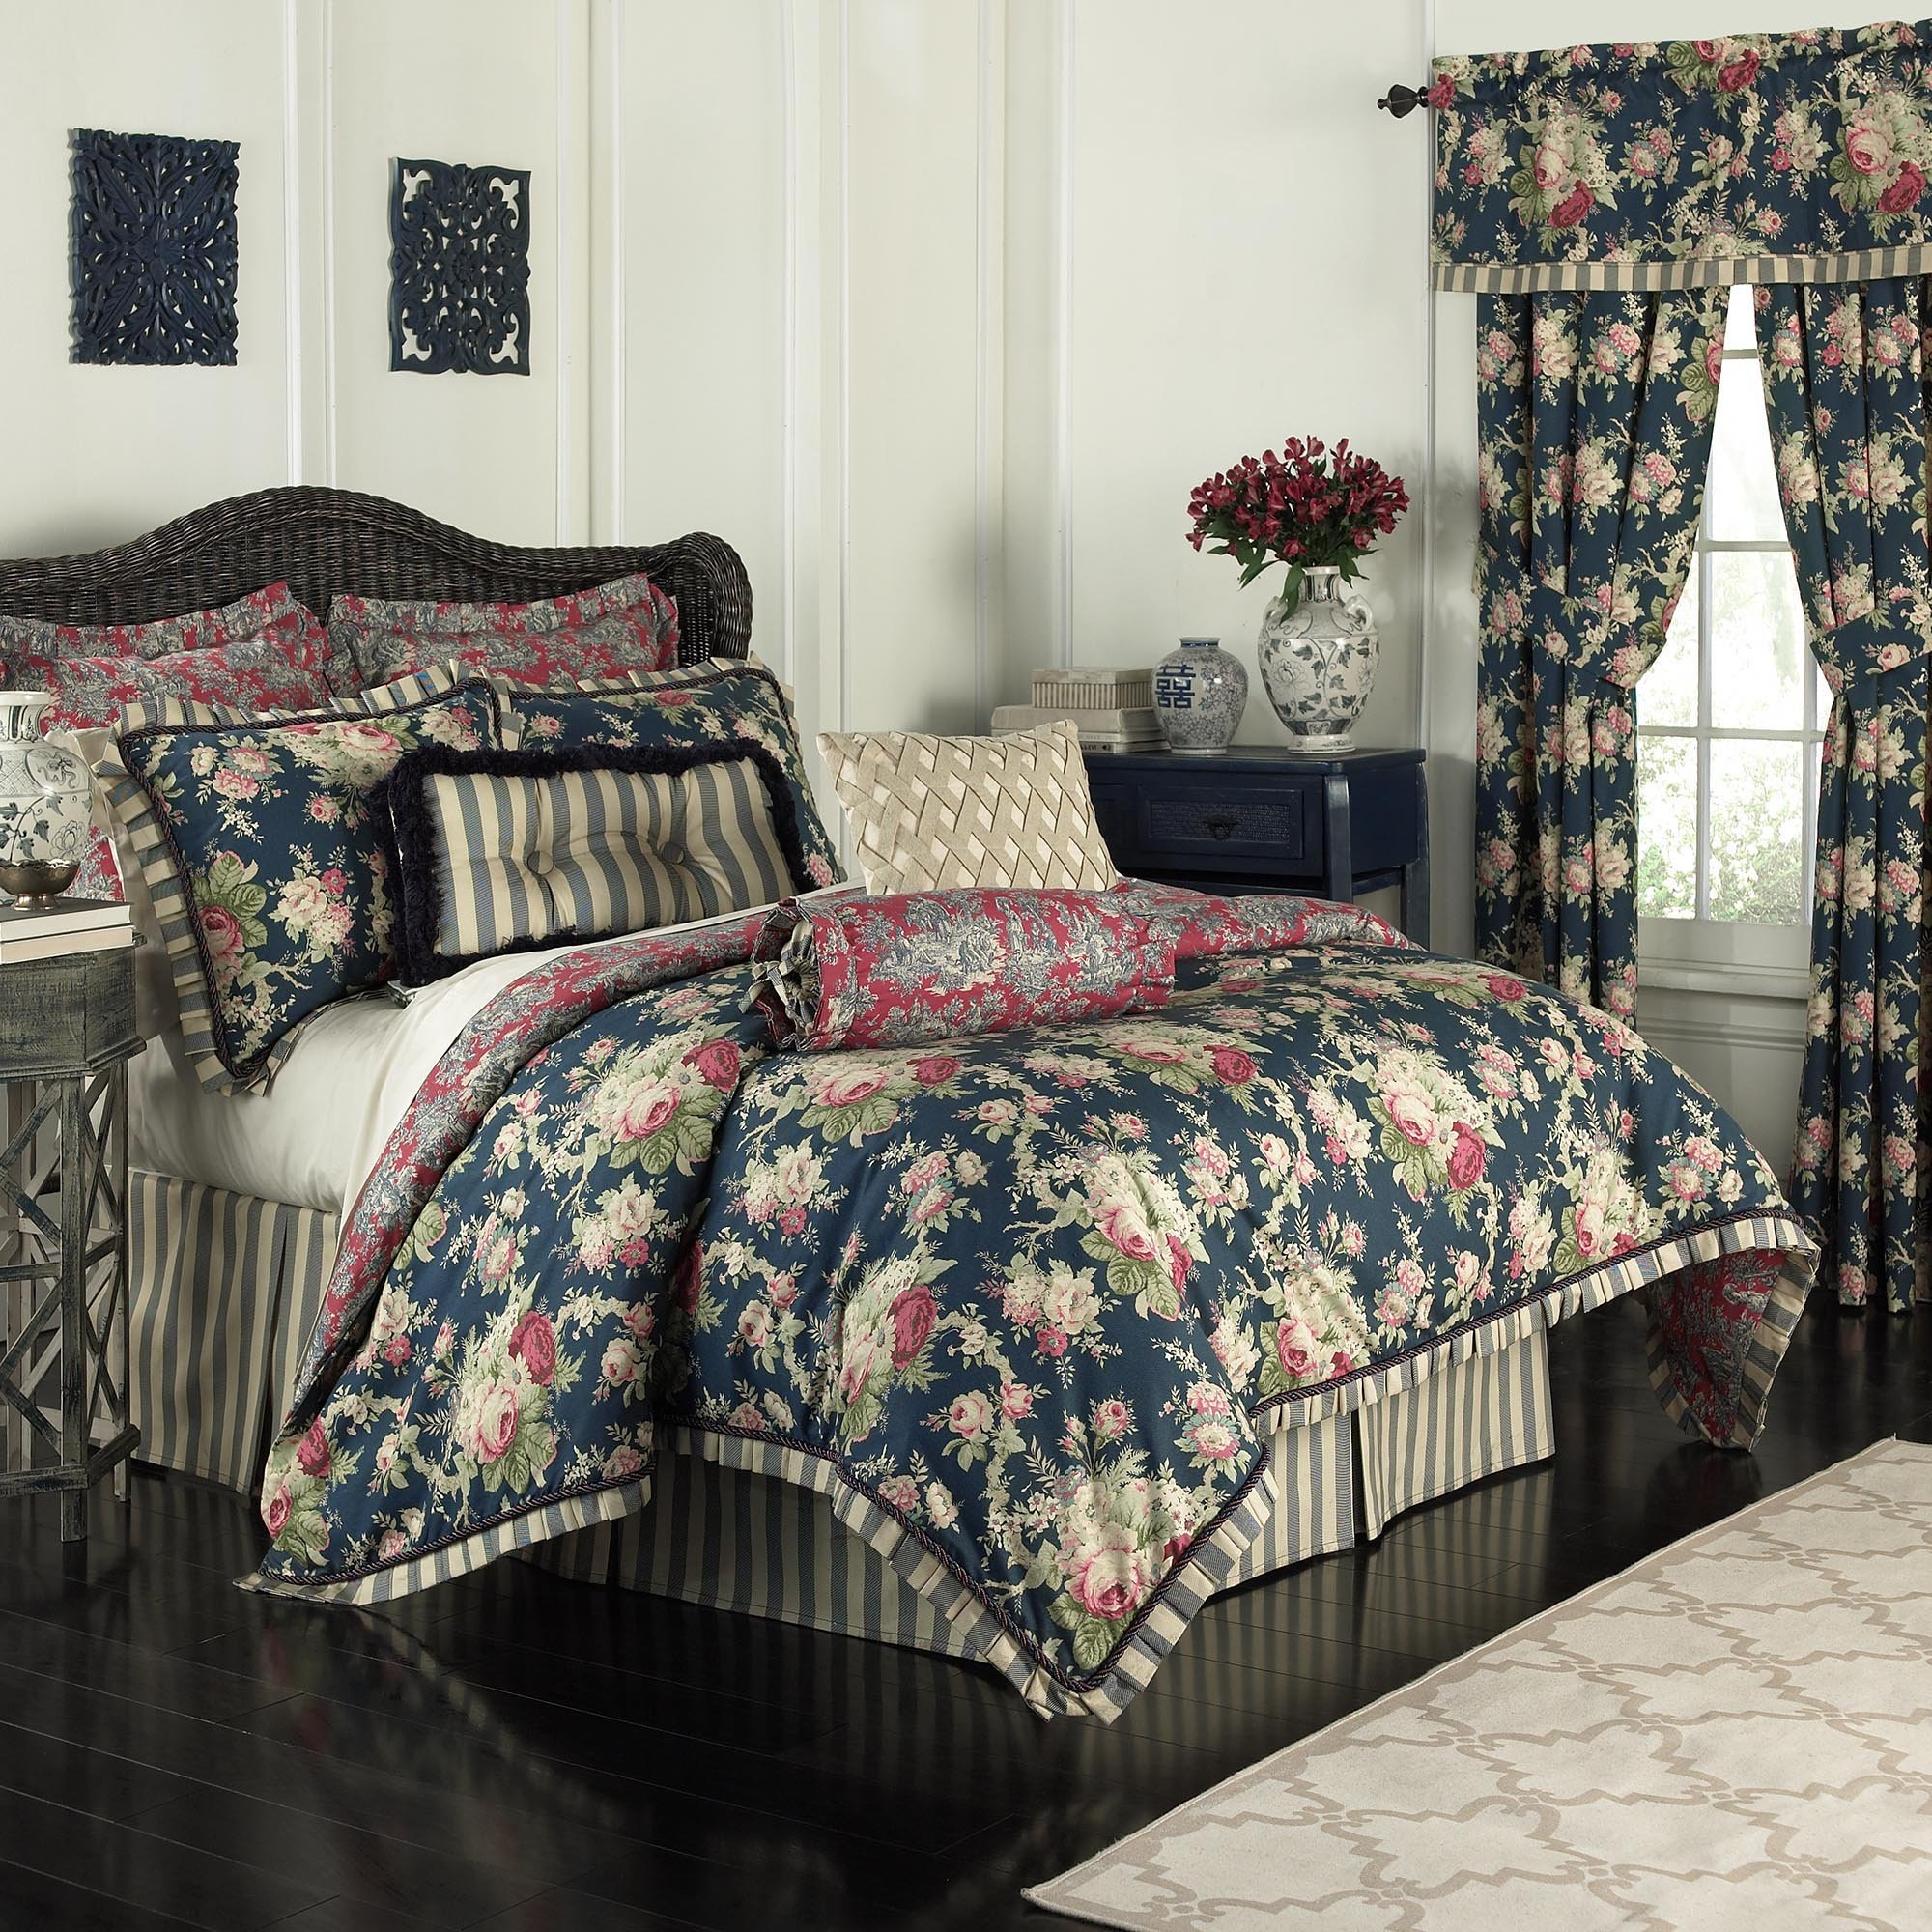 Waverly 14922BEDDQUEHTB Sanctuary Rose 96-Inch by 92-Inch 4 Piece Queen Comforter Set, Heritage Blue